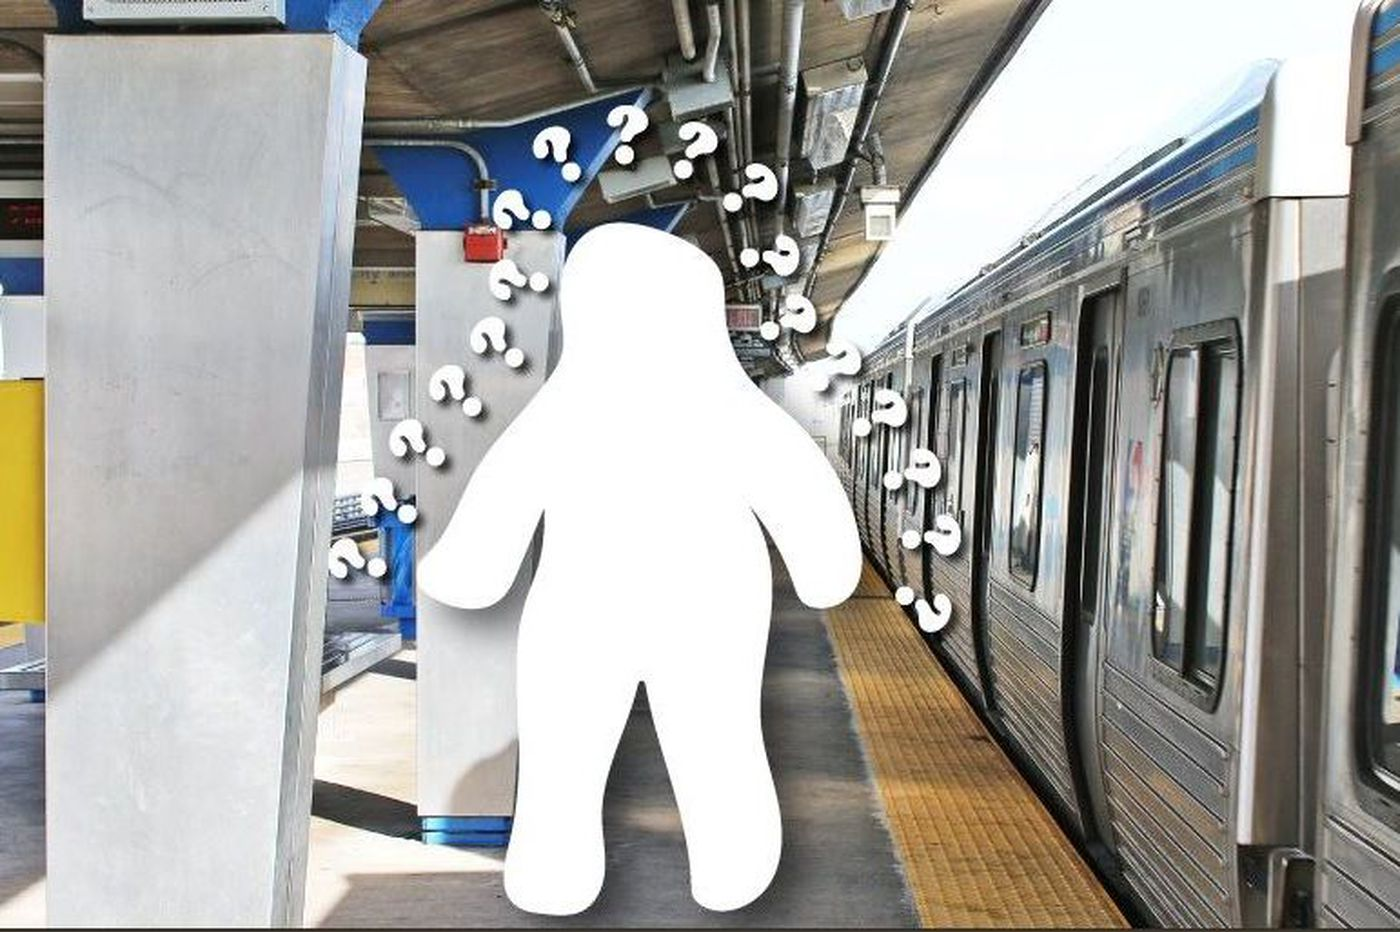 SEPTA asks Philly to pick its new mascot. It does not go well.